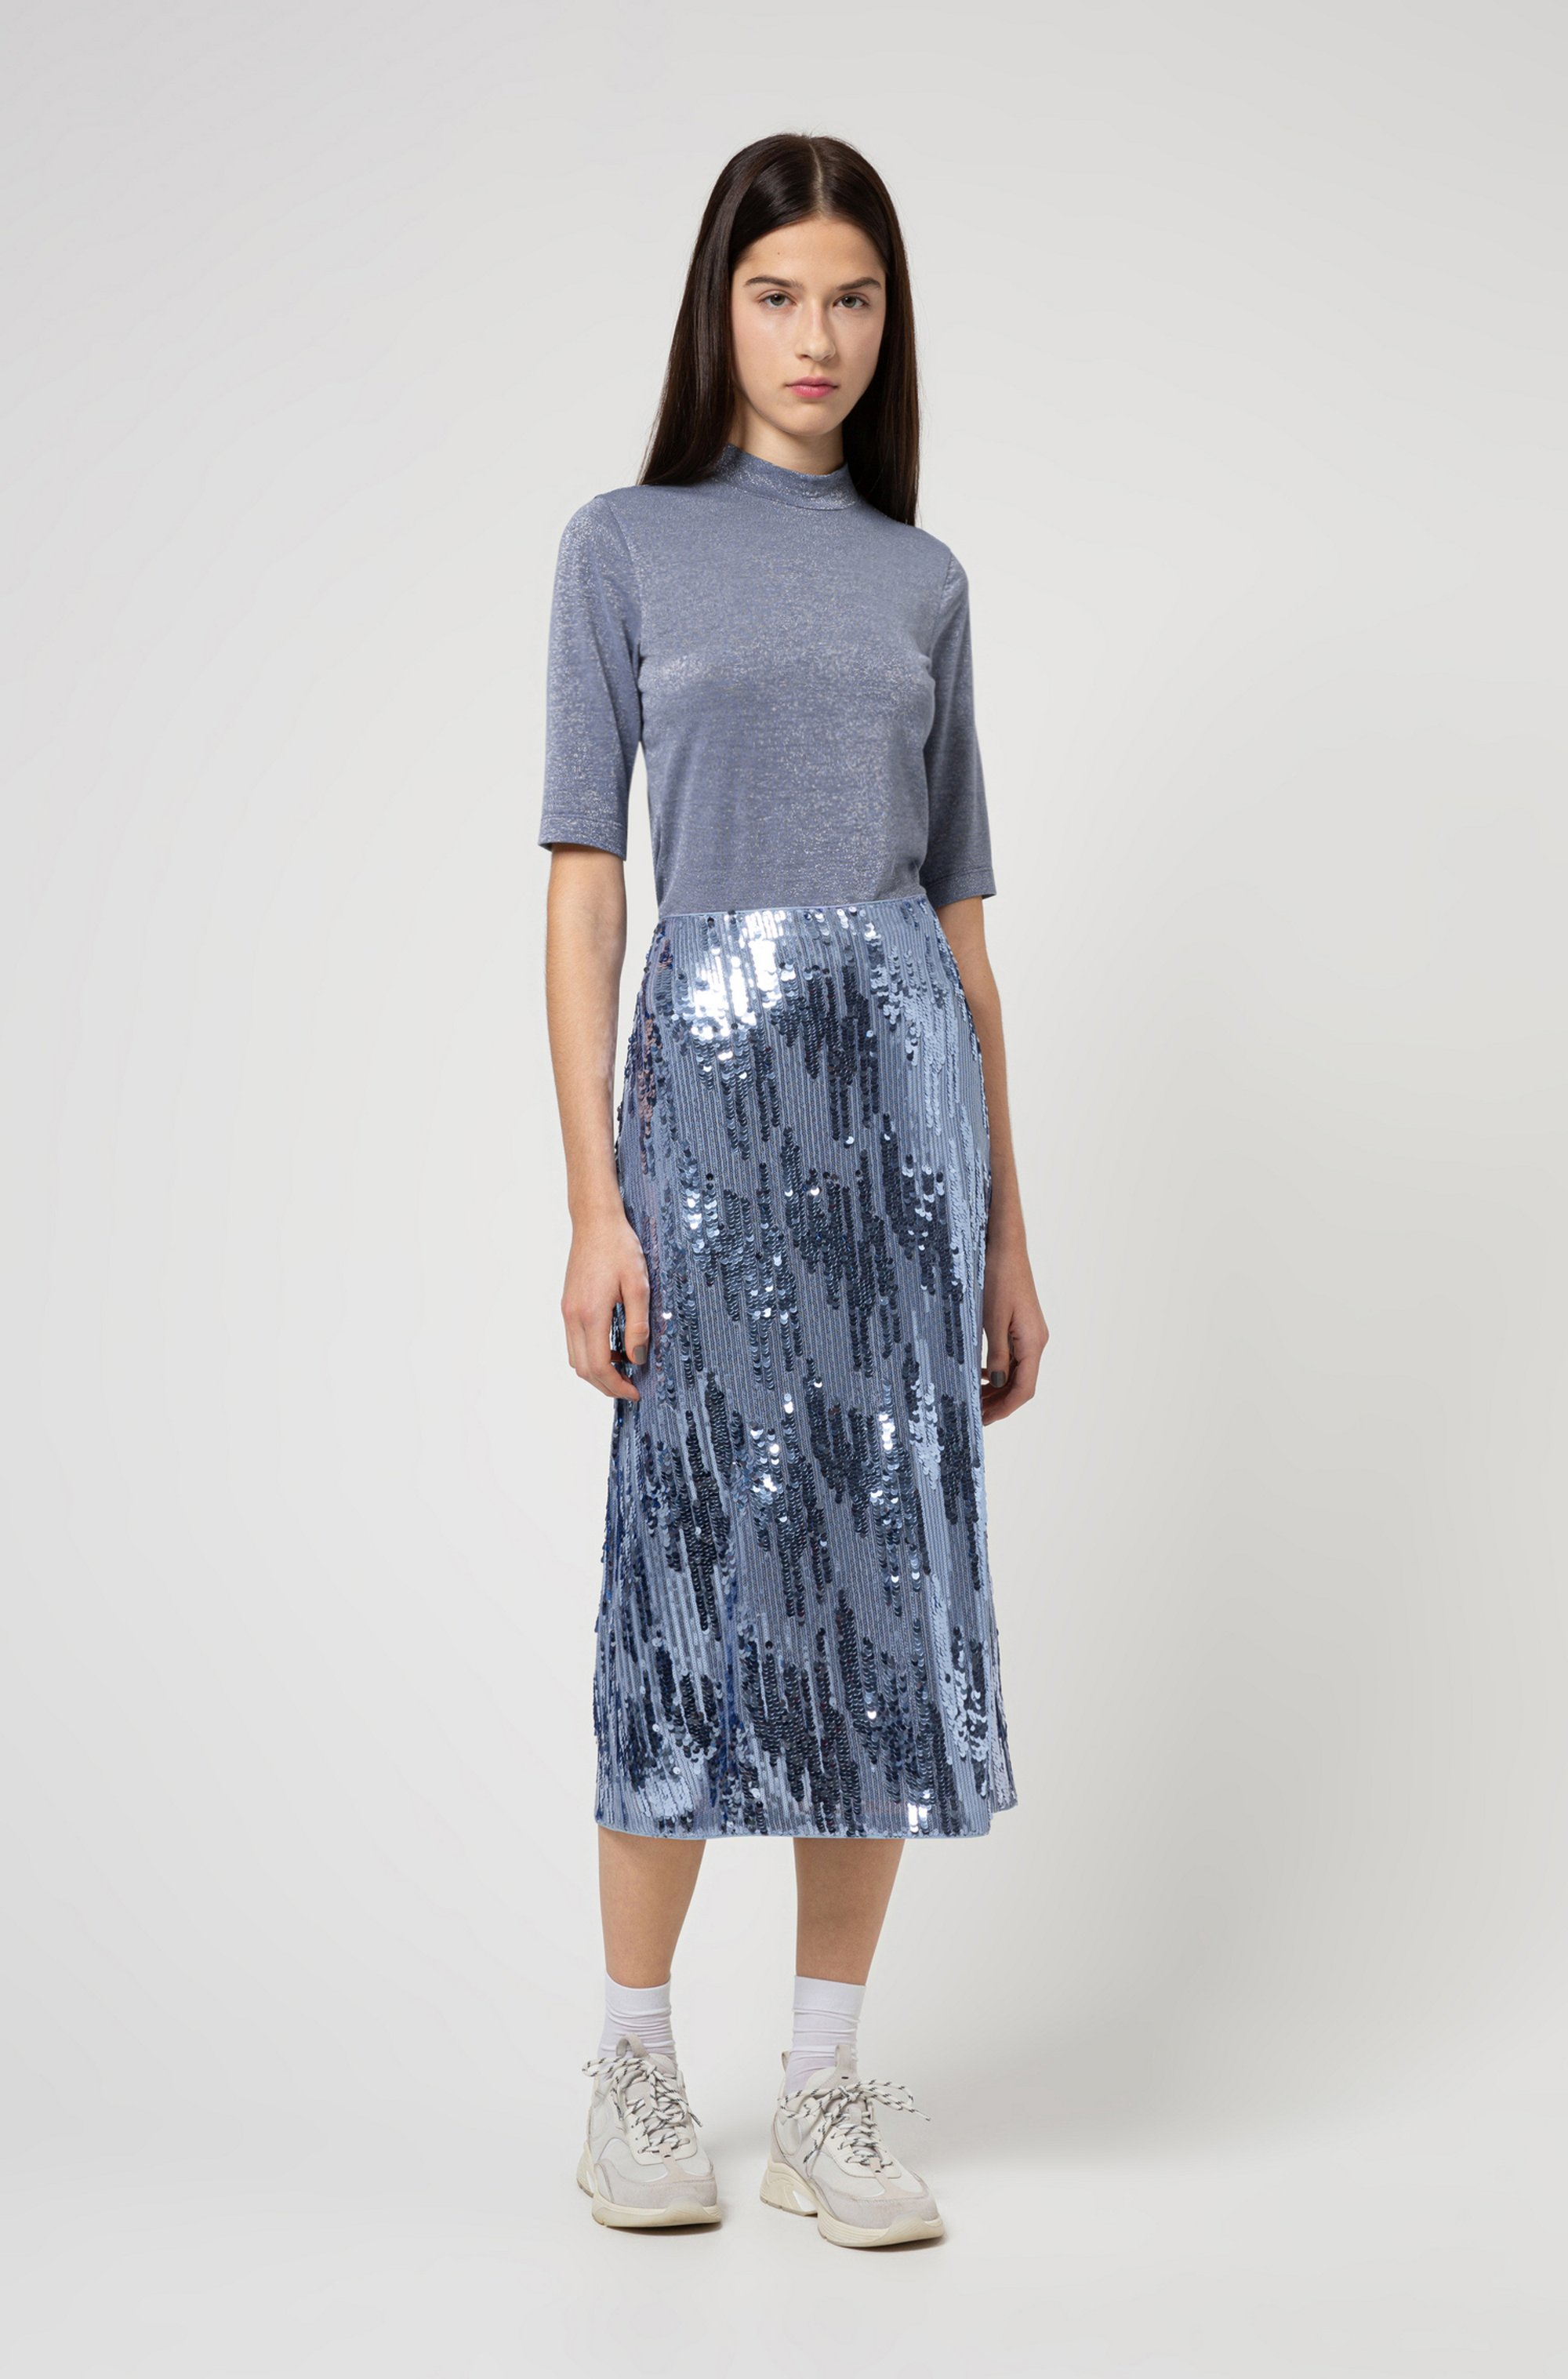 Stand-collar T-shirt in glitter-effect stretch jersey